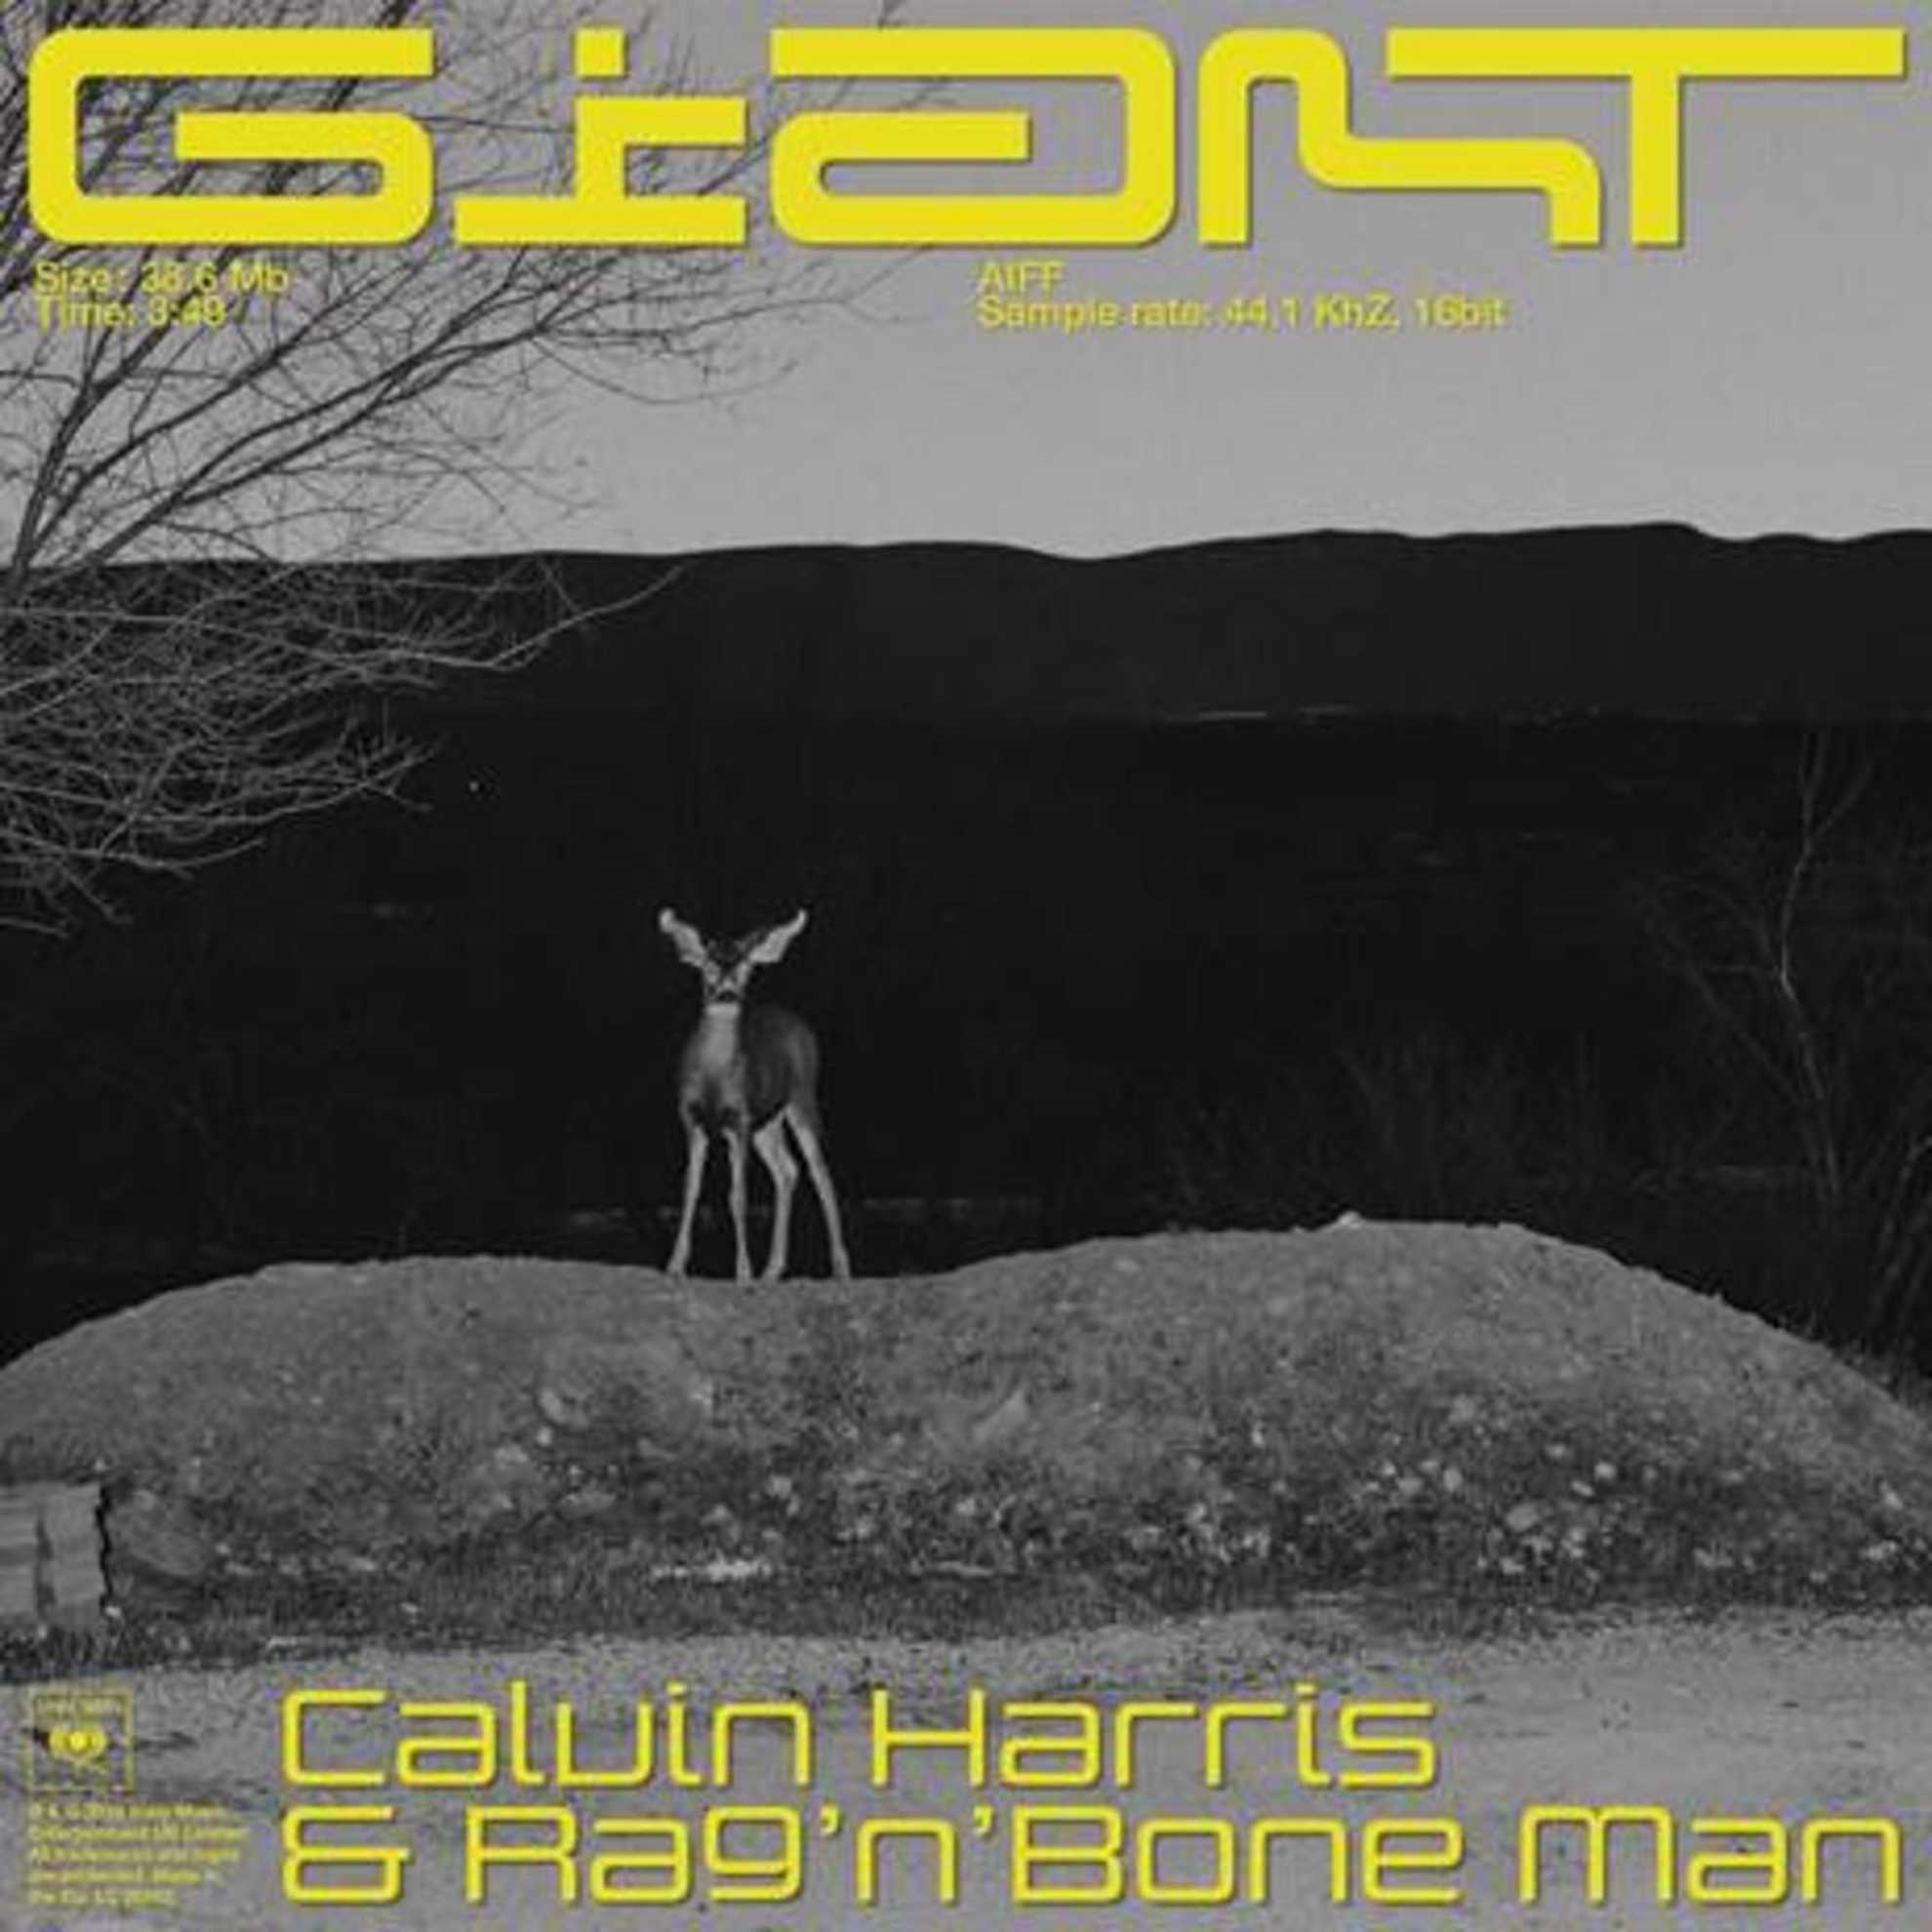 Giant - Calvin Harris & Rag 'n' Bone Man